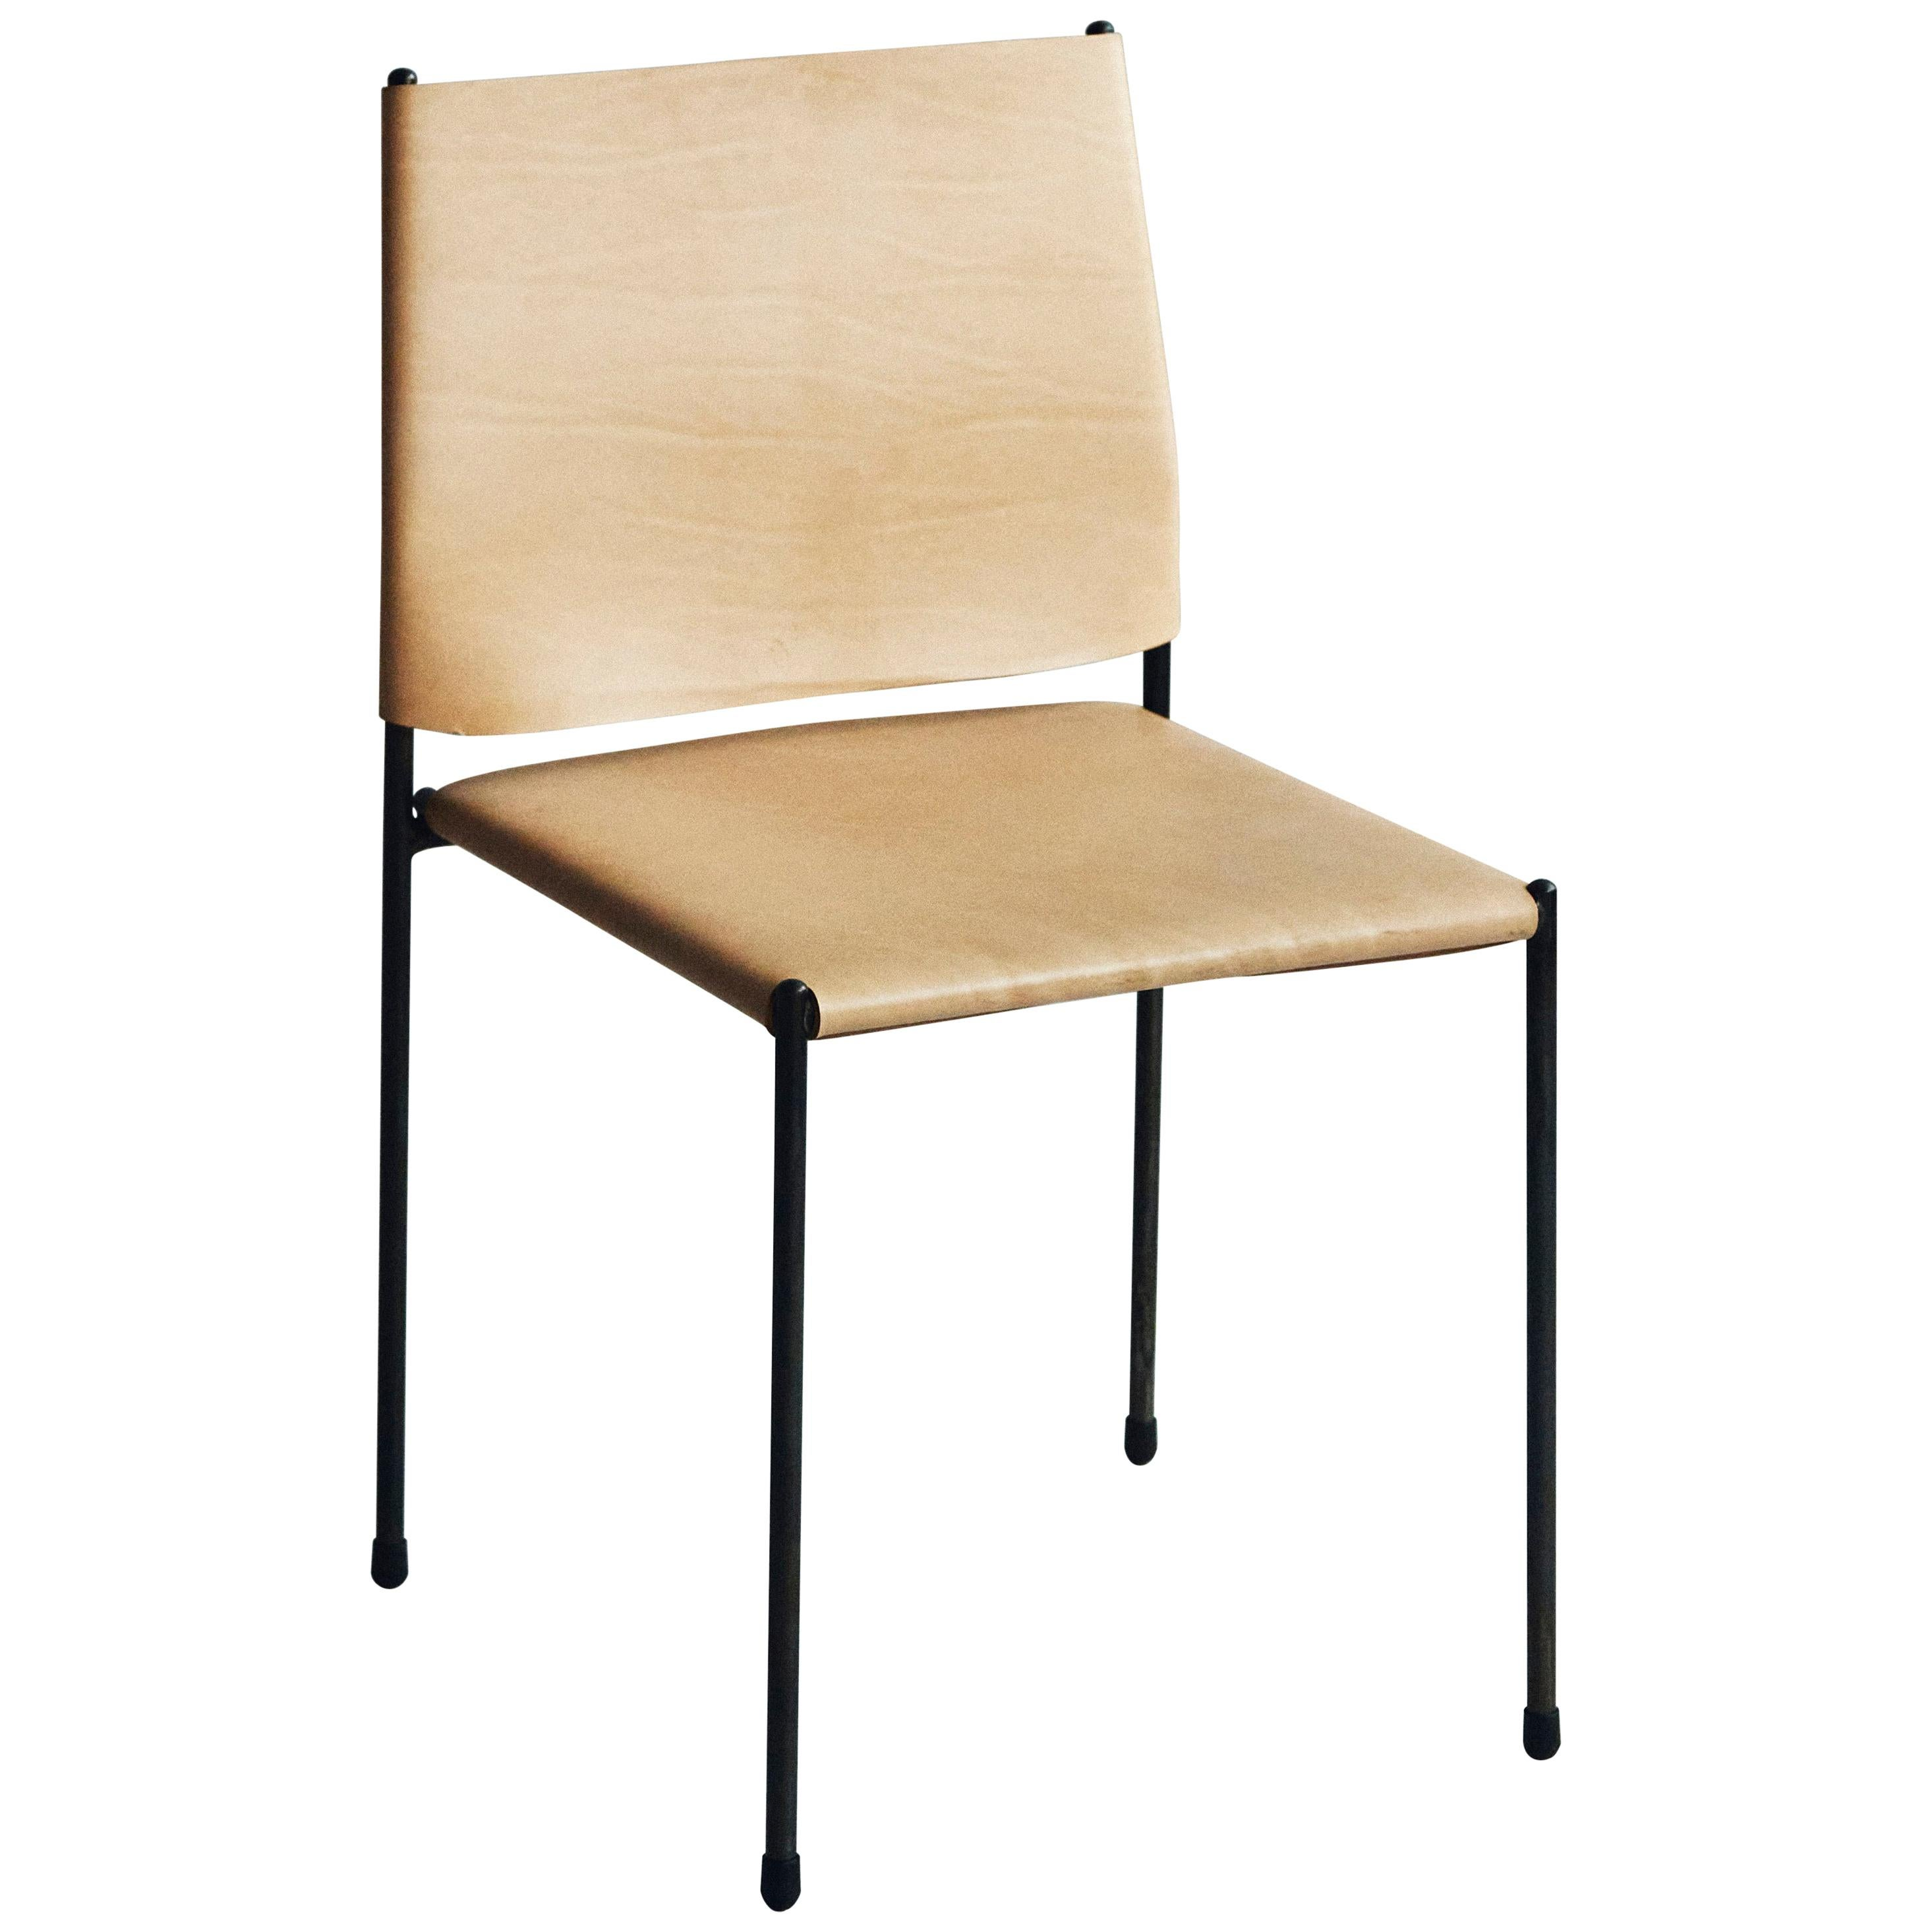 New And Custom Chairs